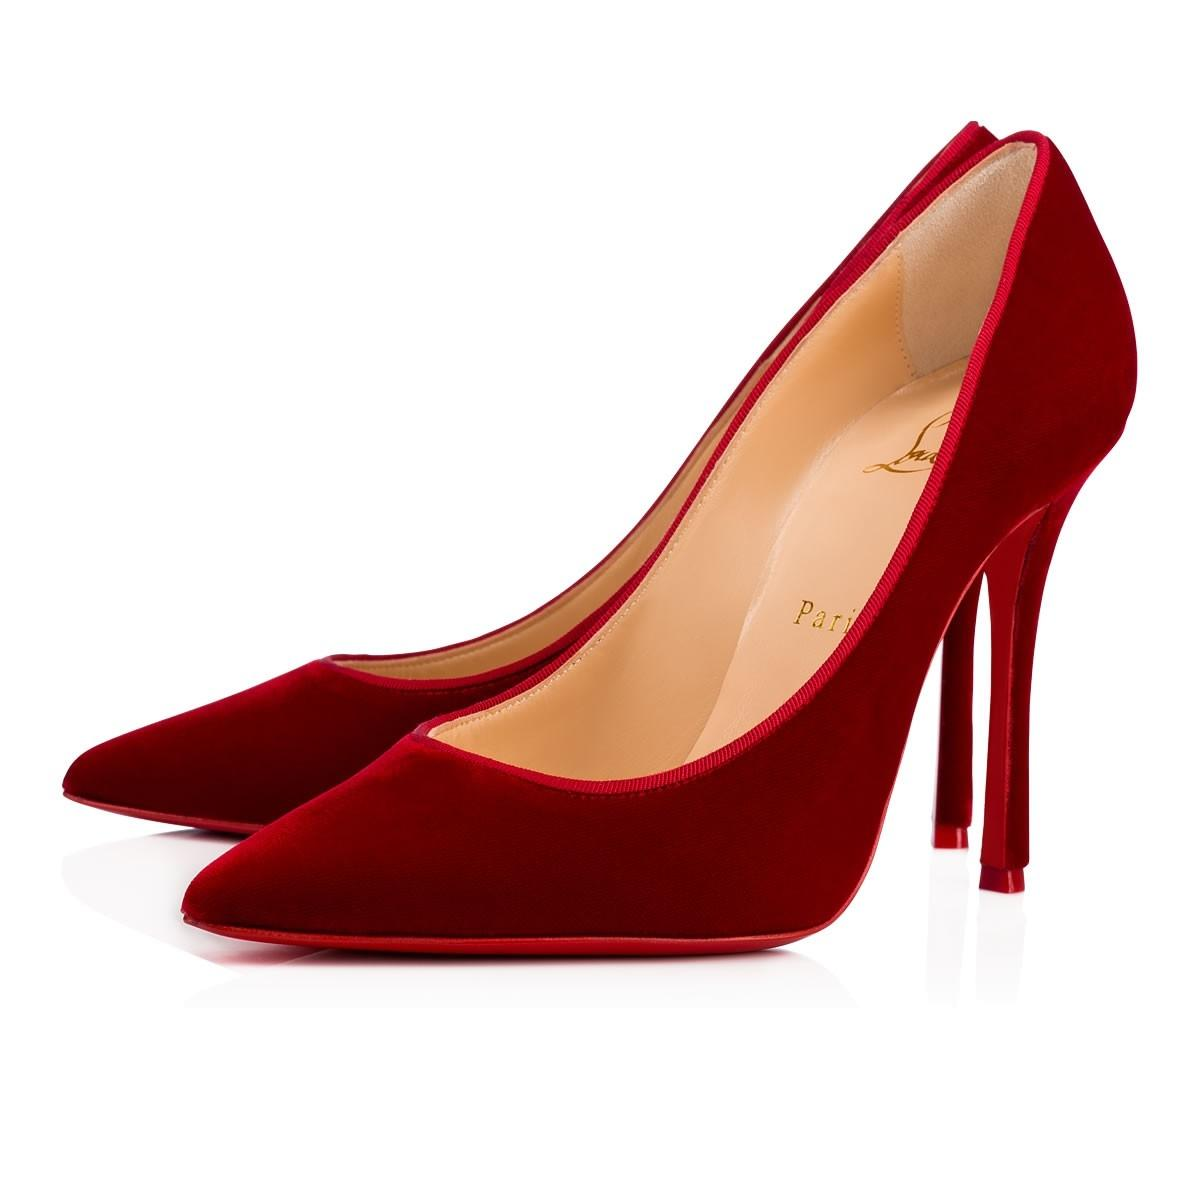 e7115a9811dc Christian Louboutin Red Decoltish 100 Rosso Rosso Rosso Velvet Pointed Toe  Heel Pumps Size EU 35 (Approx. US 5) Regular (M